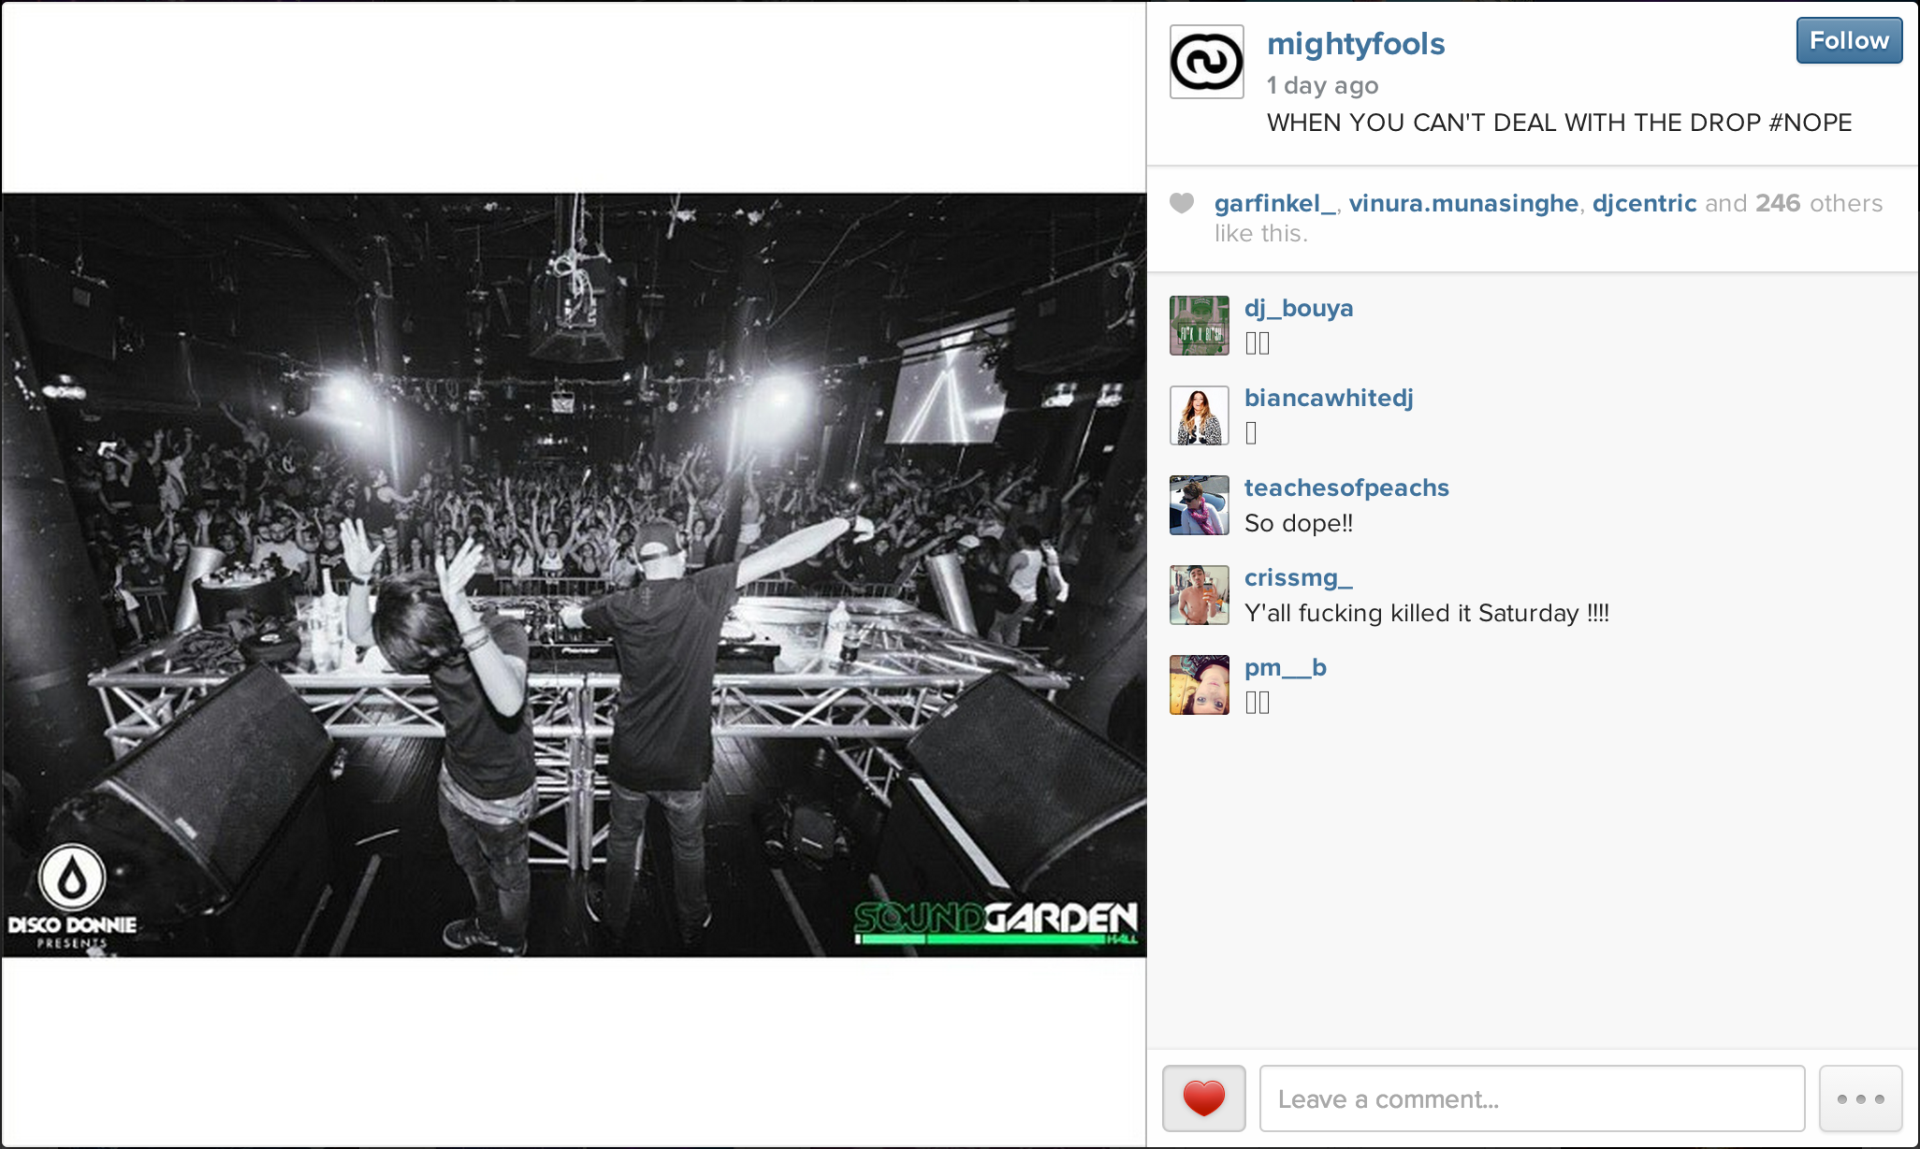 Mightyfools sharing my photo of them on their Instagram.